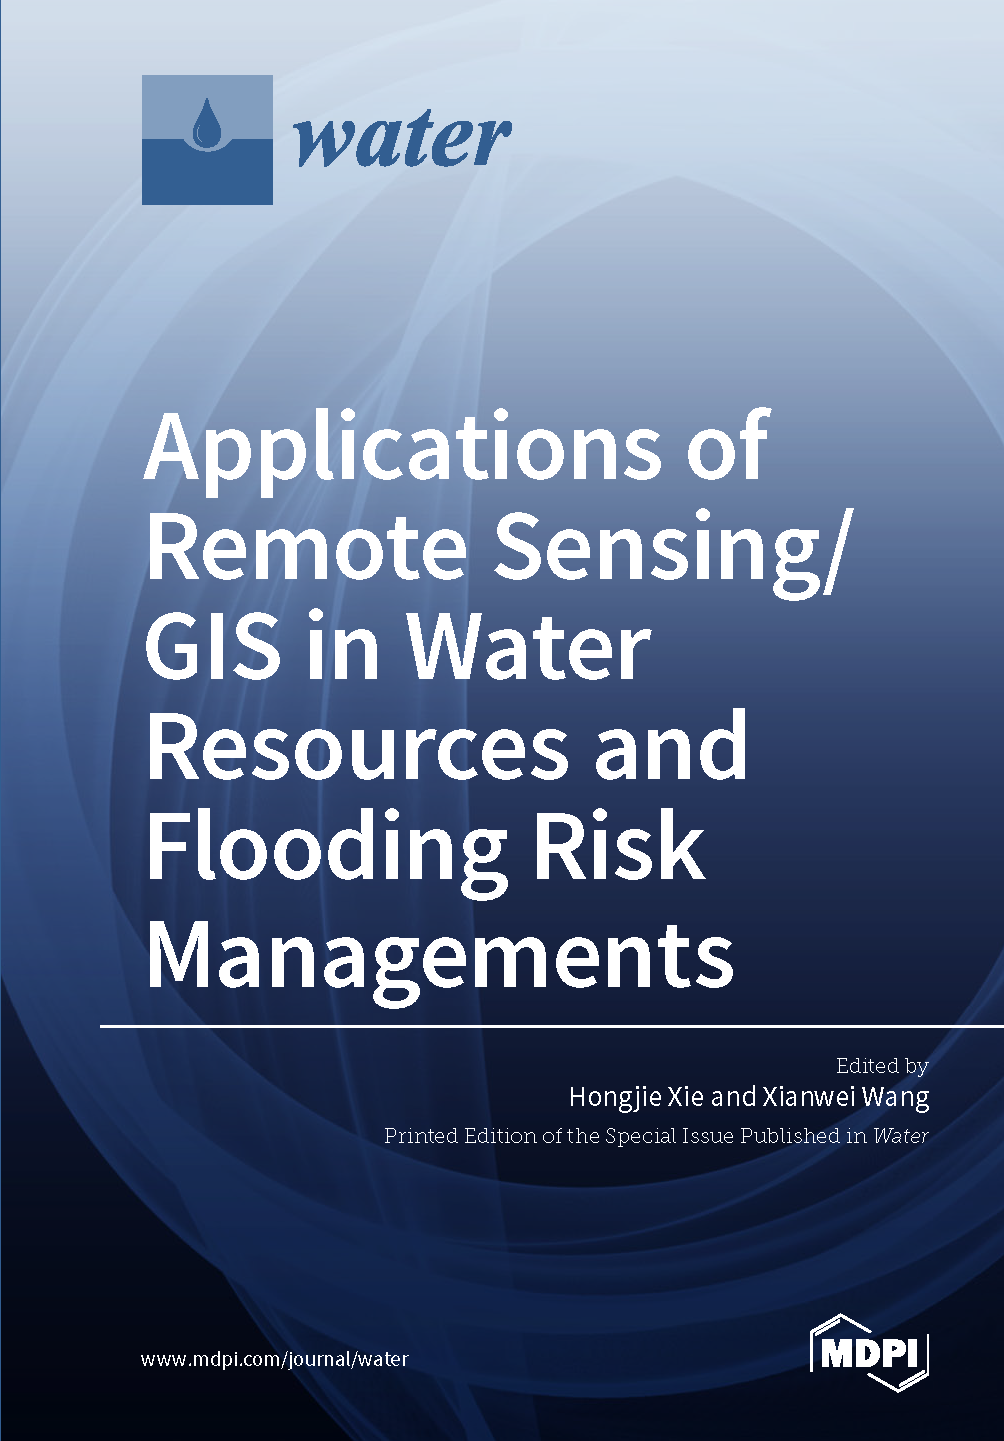 Applications of Remote Sensing/ GIS in Water Resources and Flooding Risk Managements